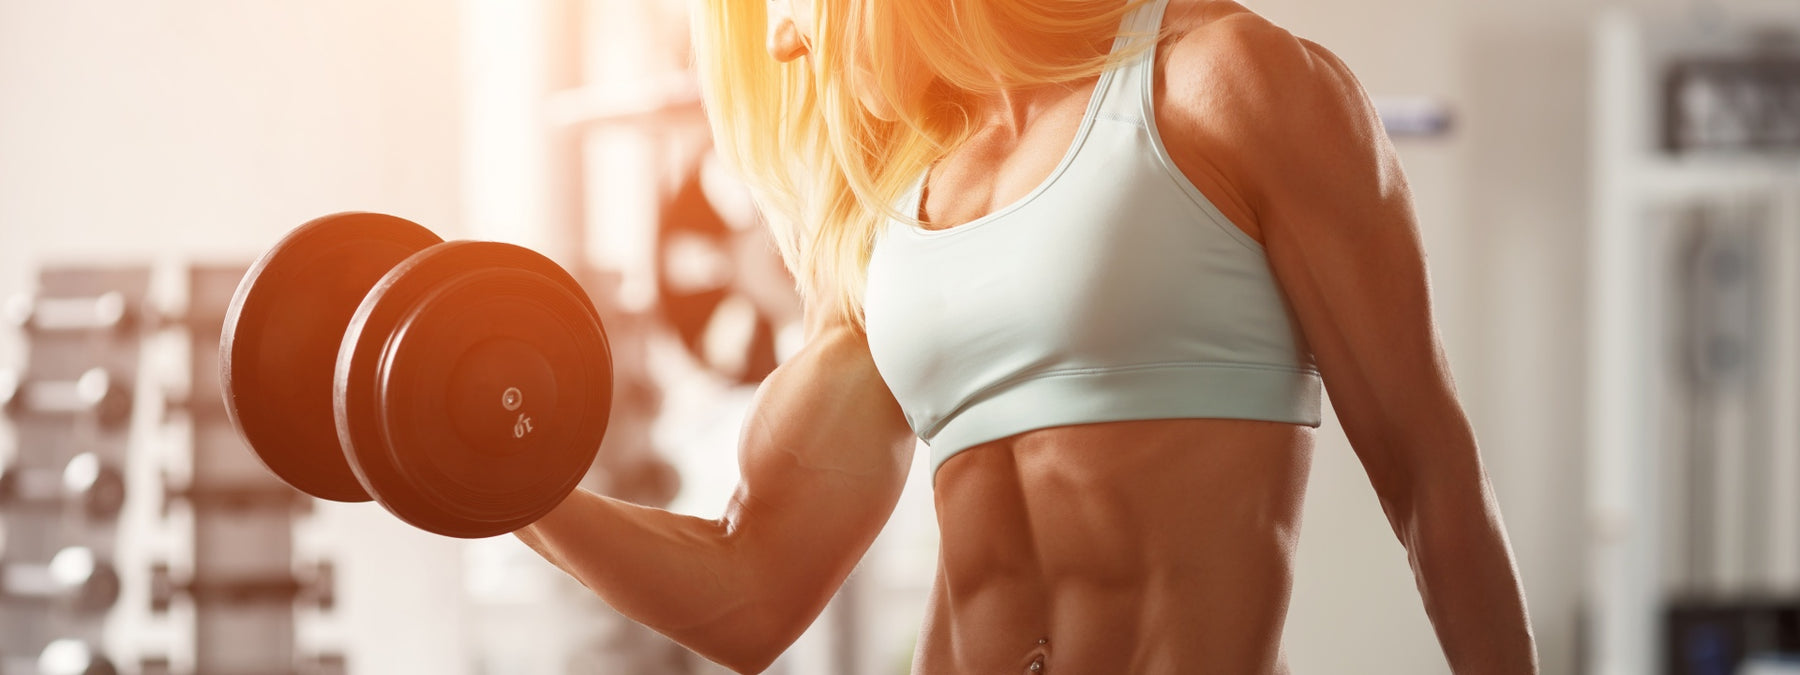 Weights Over Dates? 10 Reasons Why the Gym is Your Best Valentine